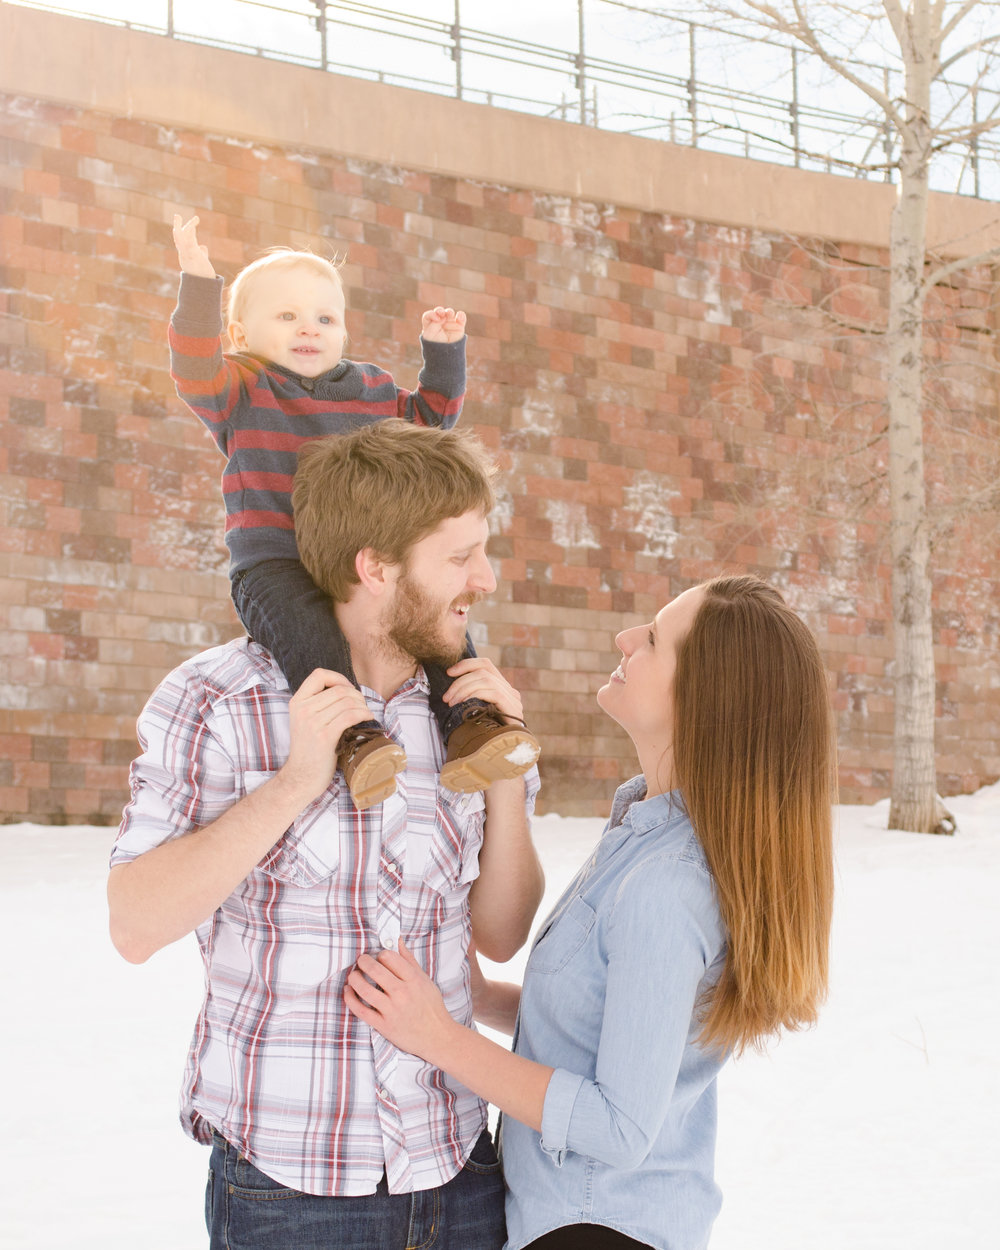 Snow family photo, play in the snow, family love